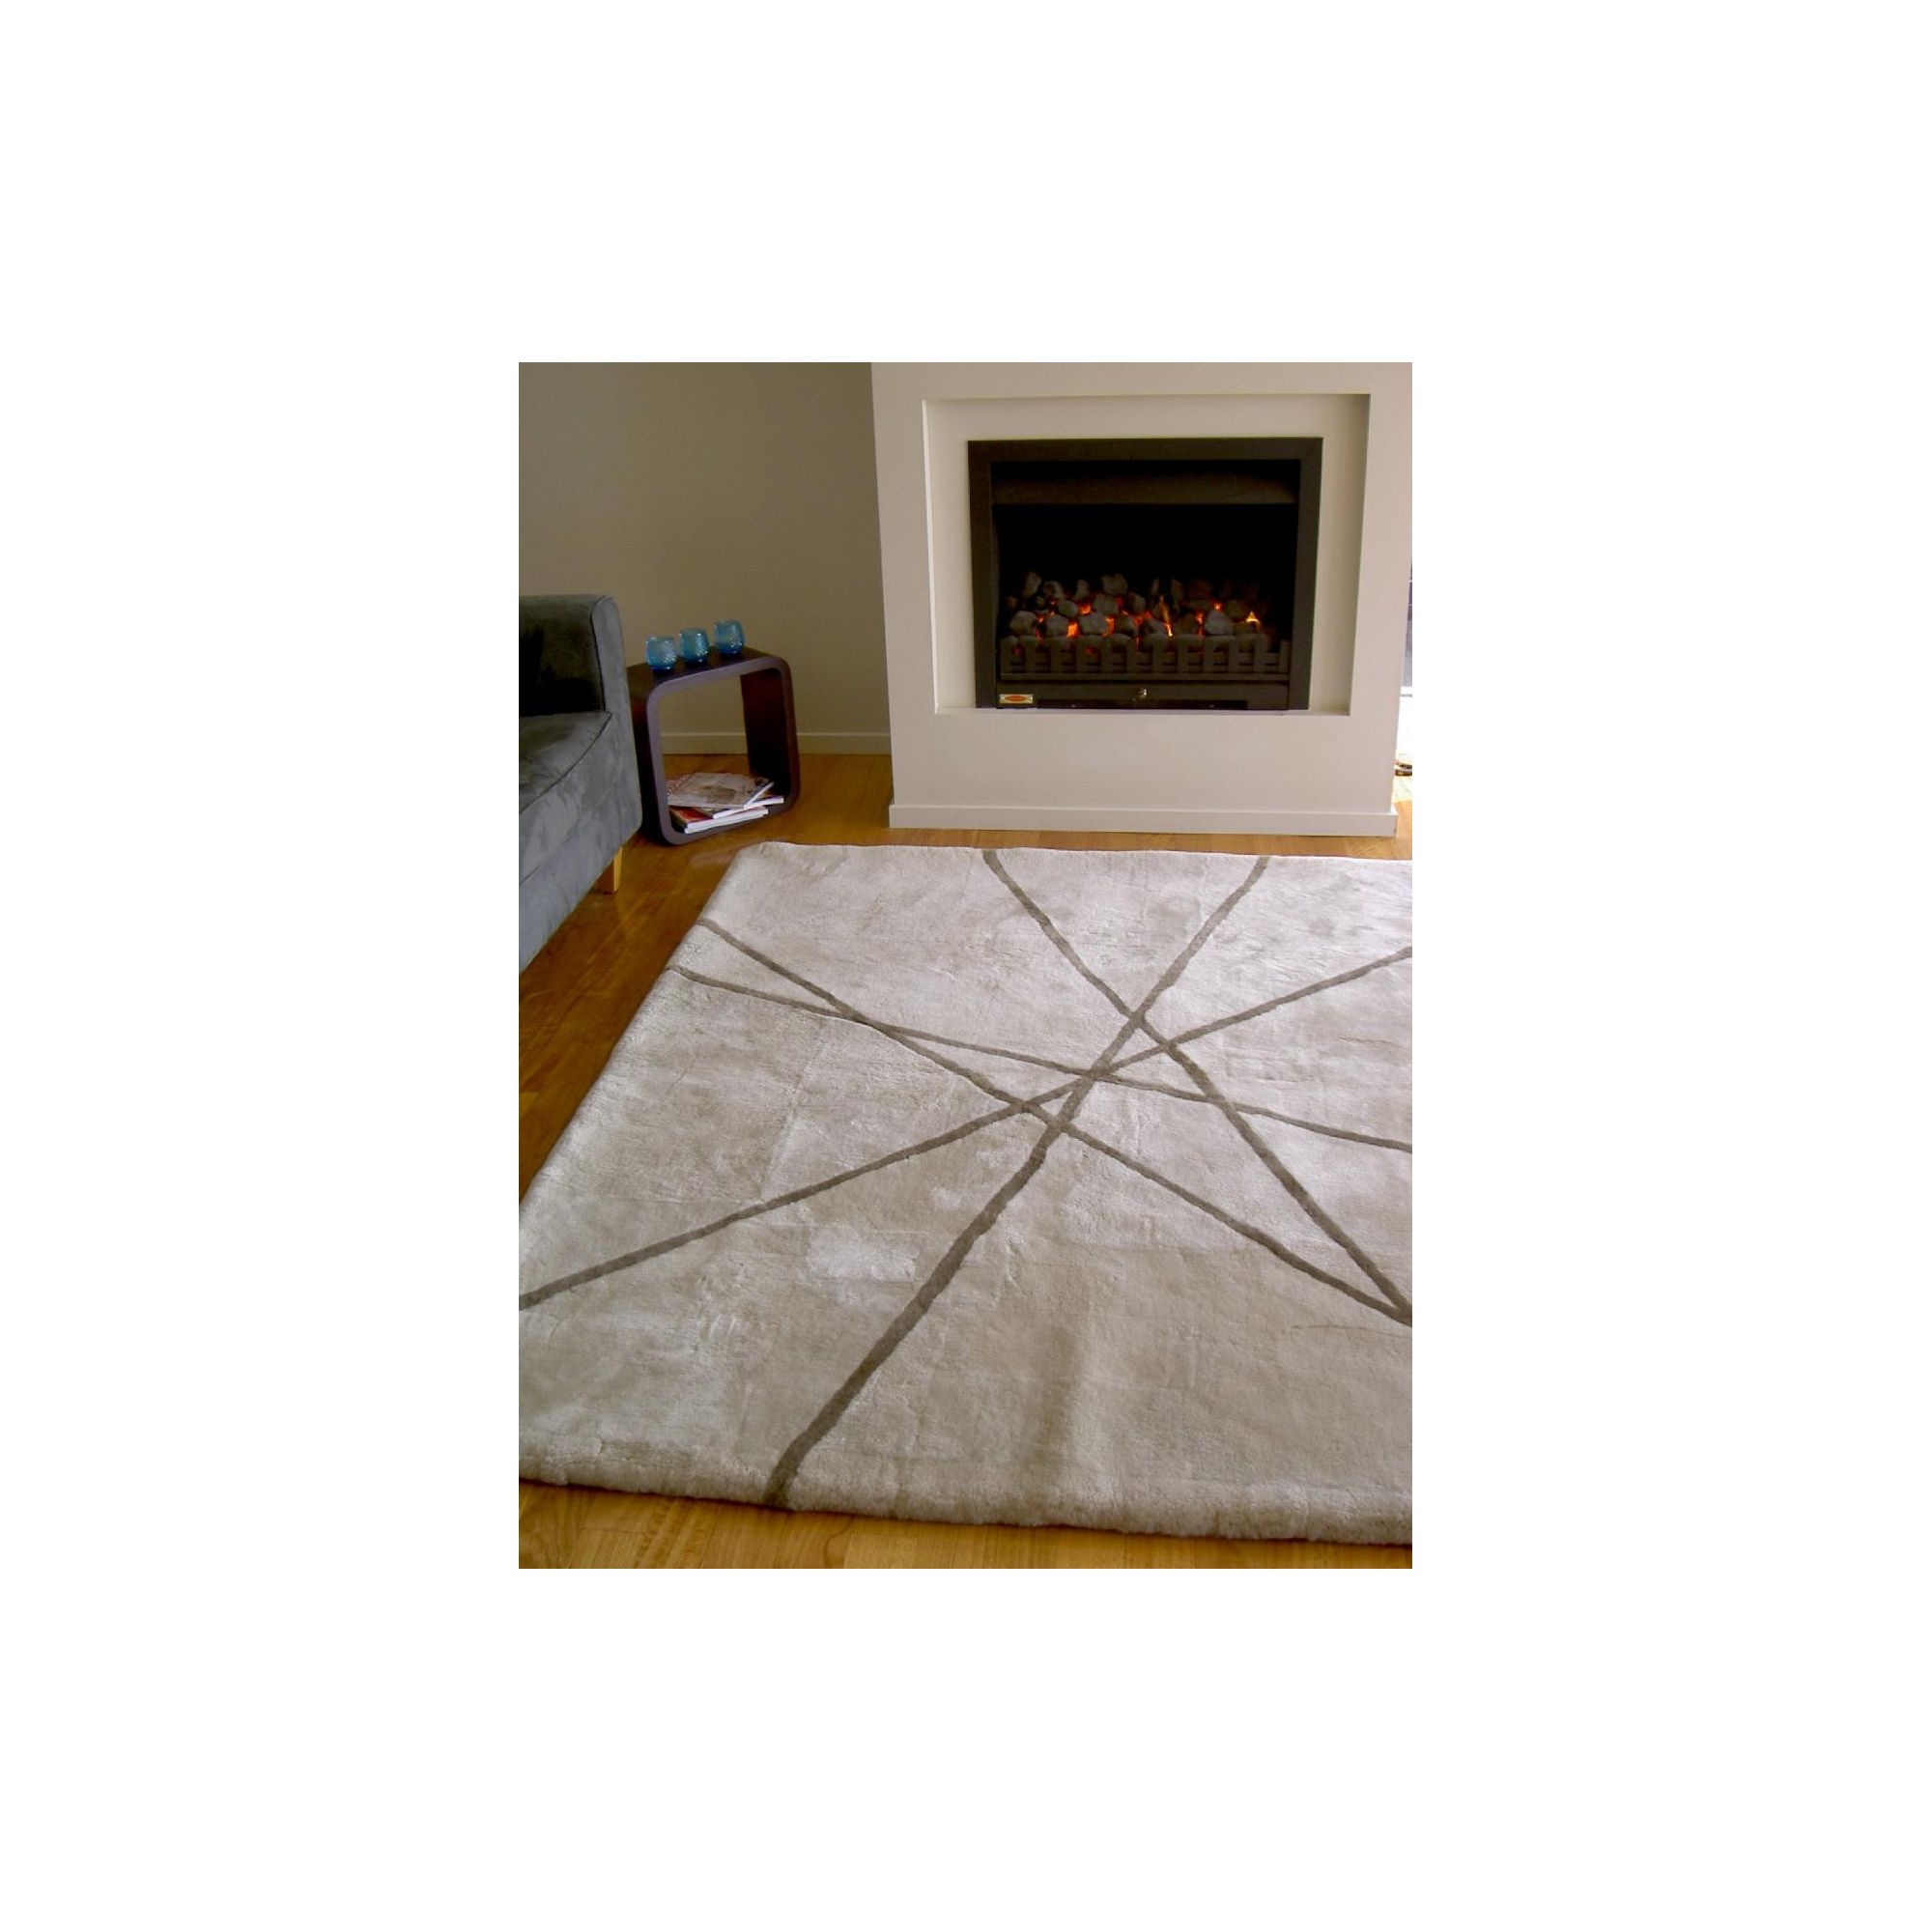 Bowron Sheepskin Shortwool Design Lines Rug - 240cm H x 170cm W x 1cm D at Tesco Direct